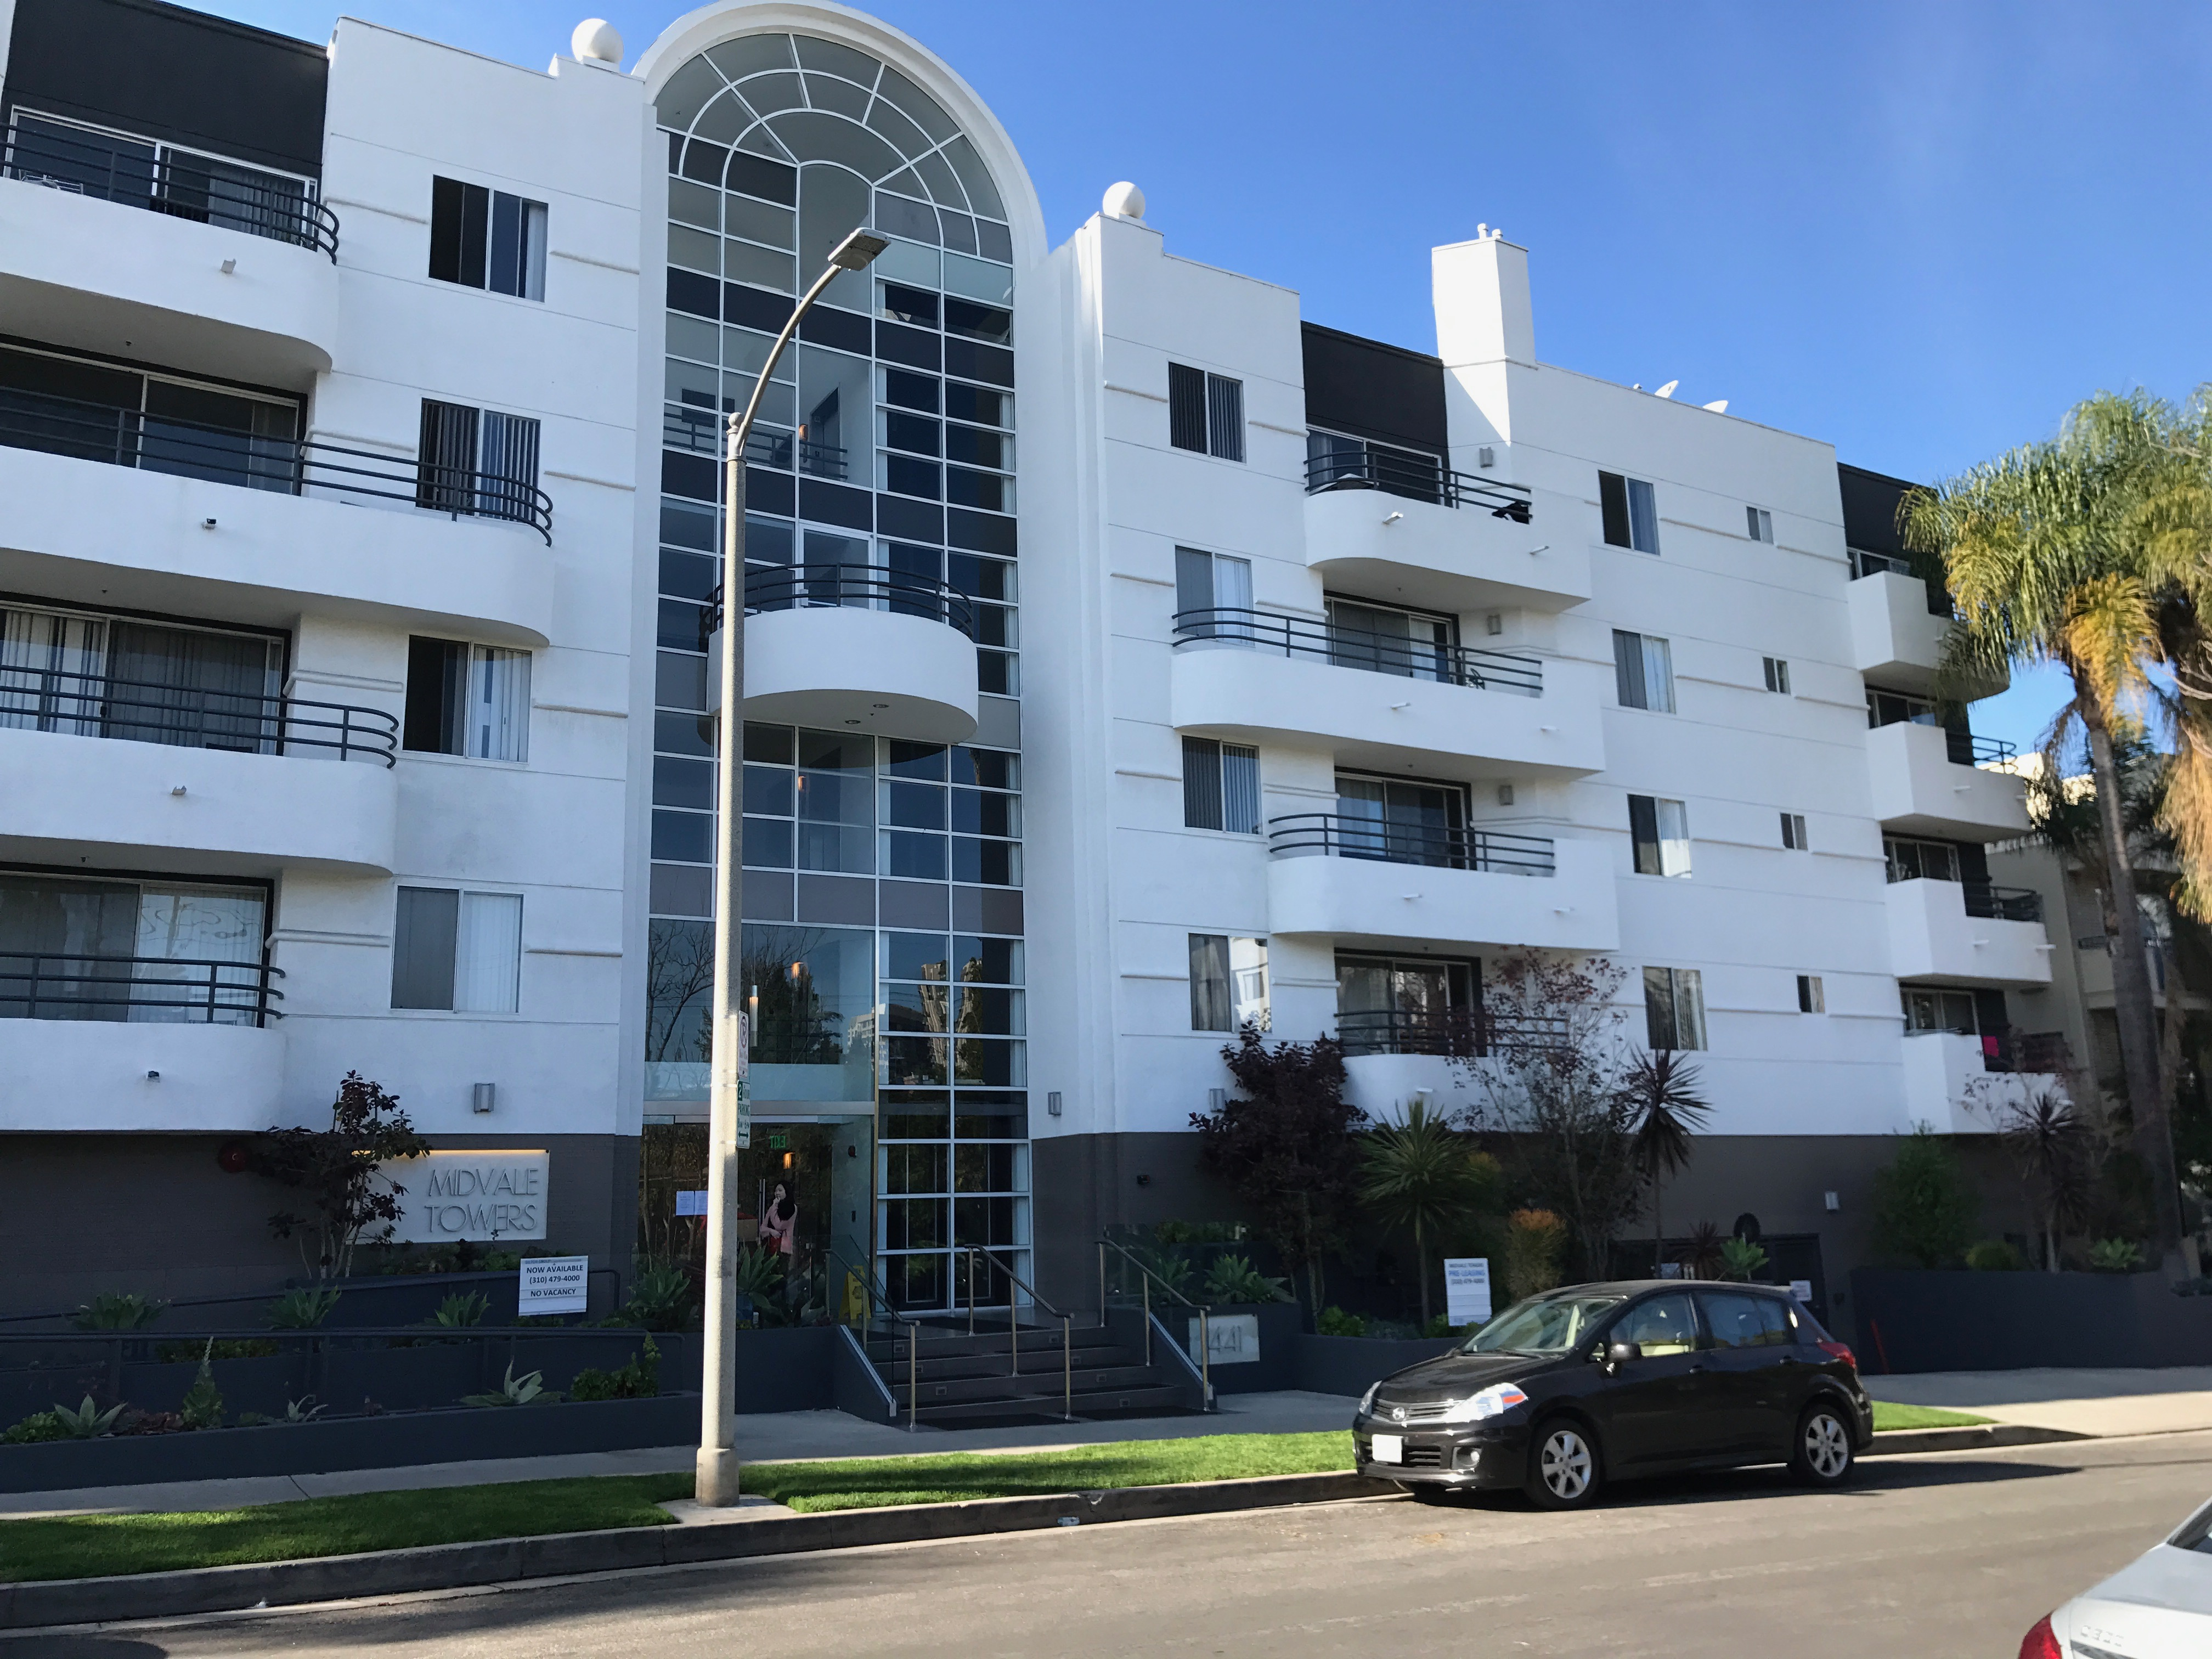 Midvale Towers Apartment Residence Painted In White with Grey Accent Colors